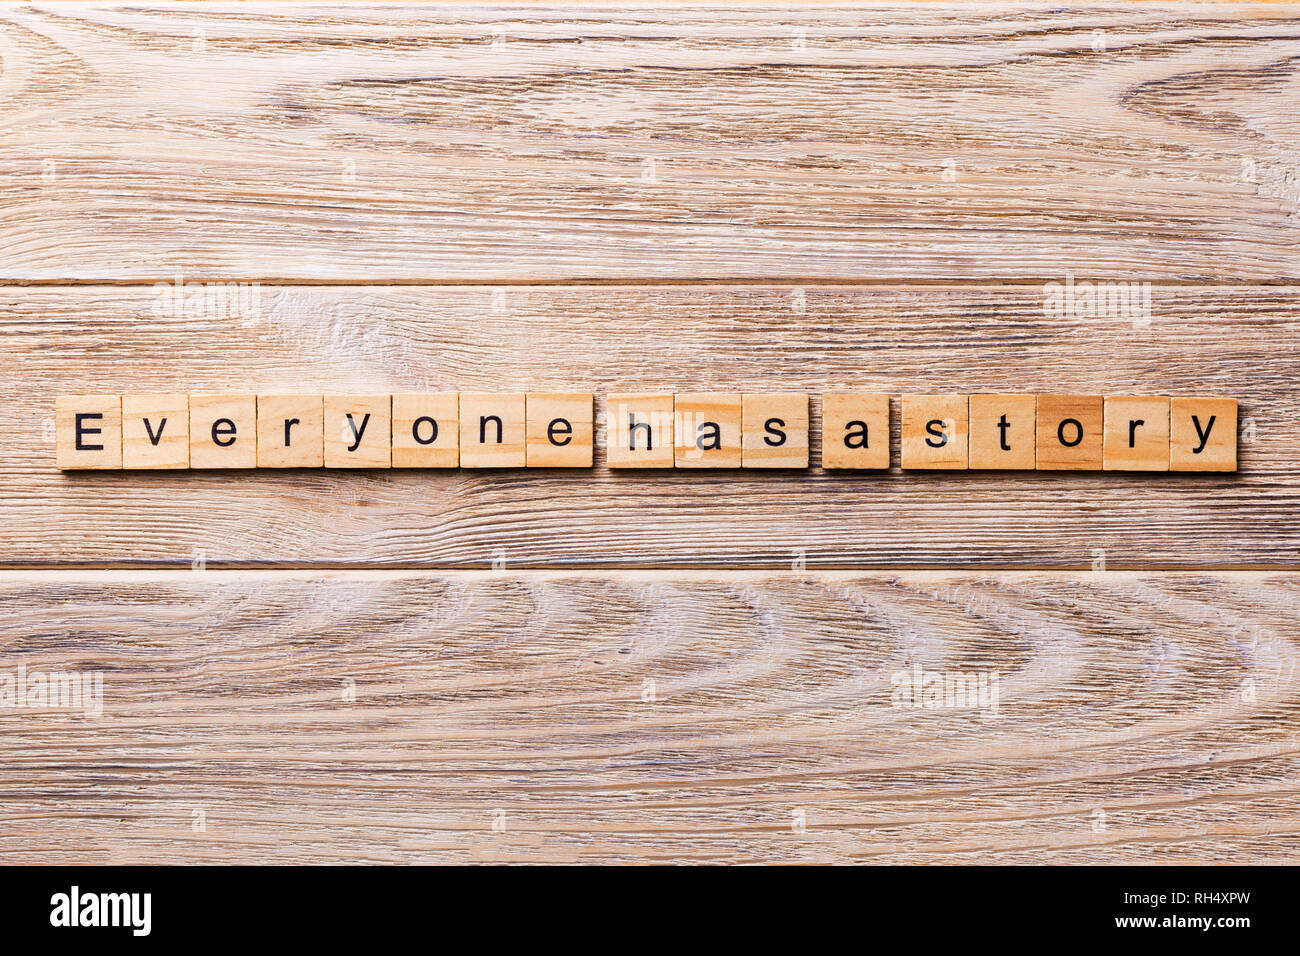 Everyone Has a Story word written on wood block. Everyone Has a Story text on wooden table for your desing, concept. - Stock Image